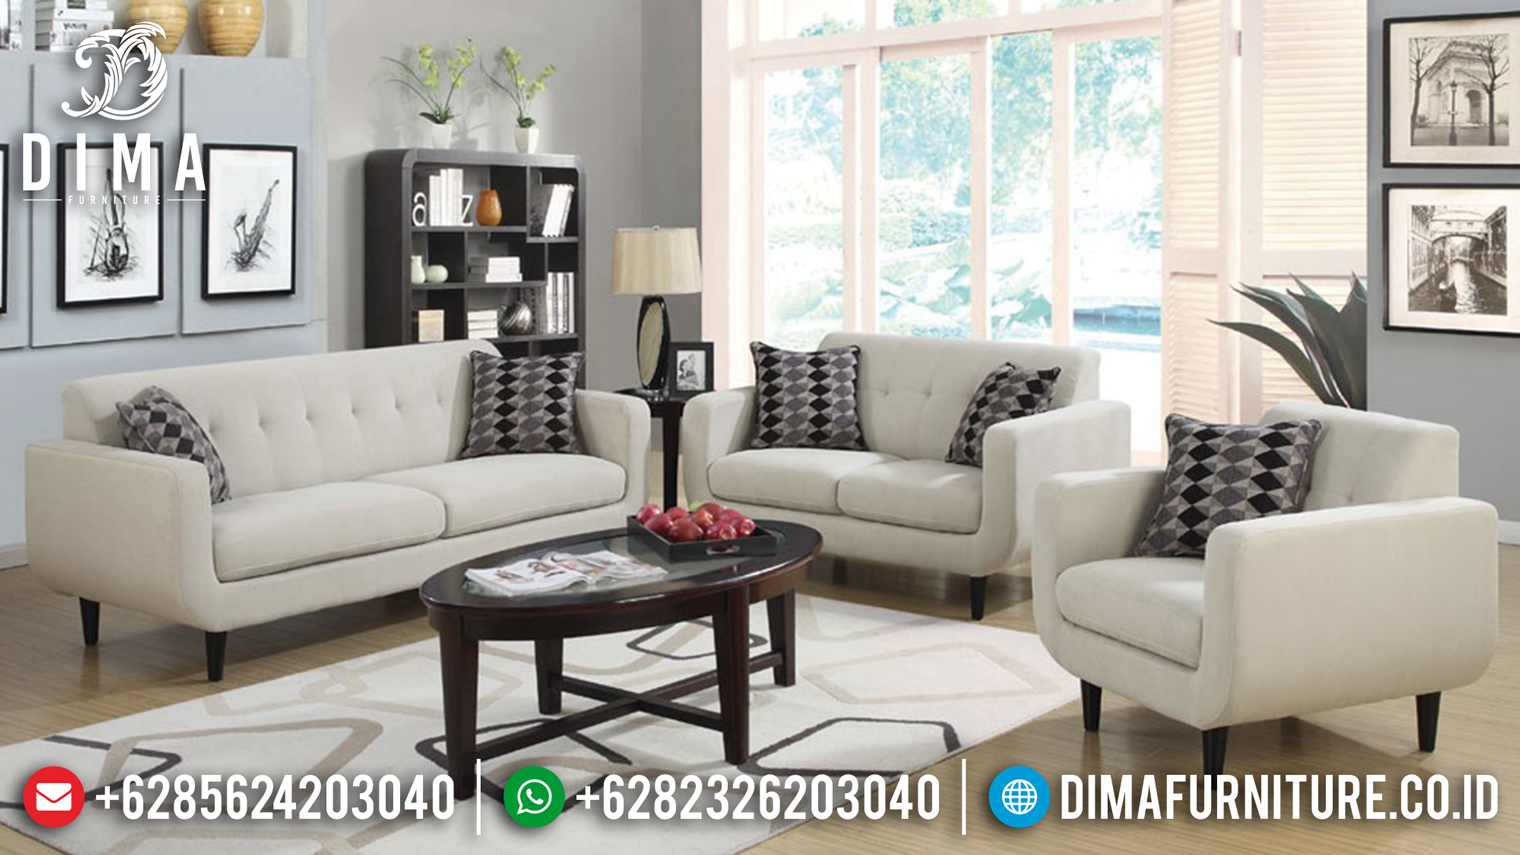 Sofa Tamu Minimalis Jepara Model Rosalie Terbaru Fabric Cover DF-0655